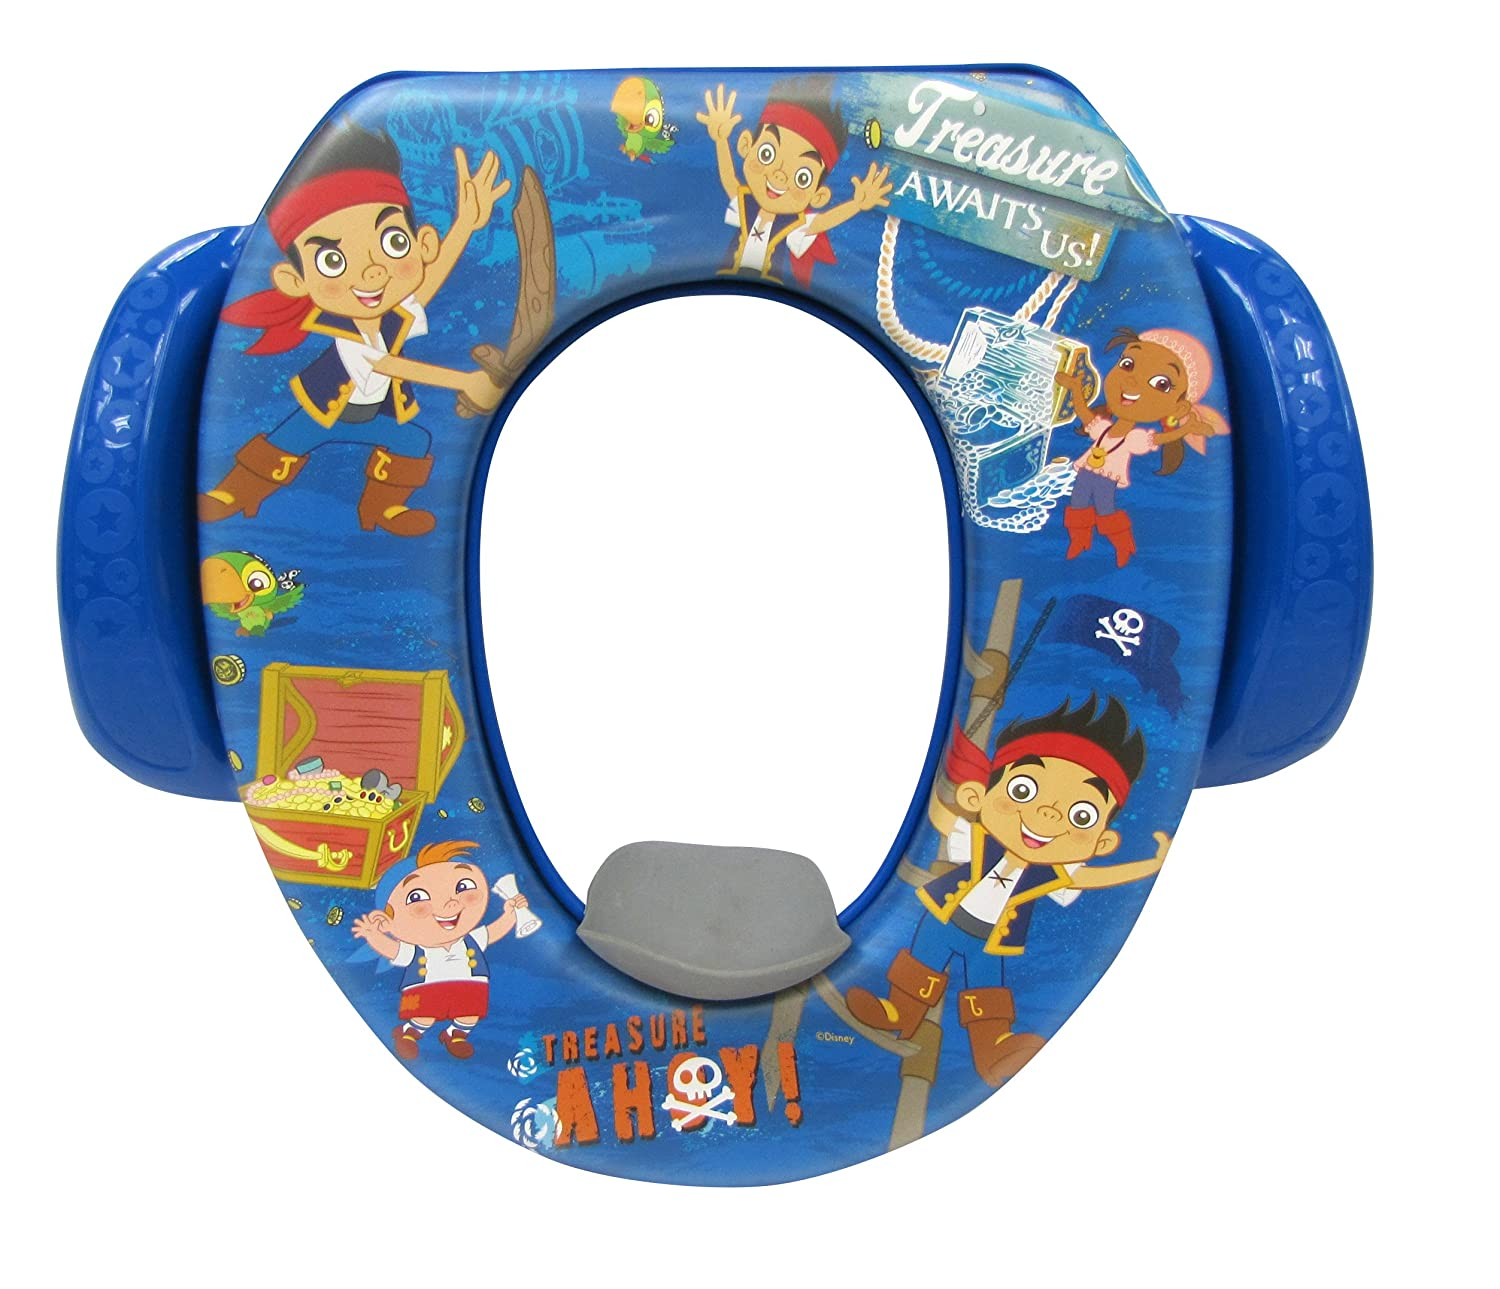 Disney Jake and The Never Land Pirates'Treasure Ahoy' Soft Potty  , Blue GINSEY 57203